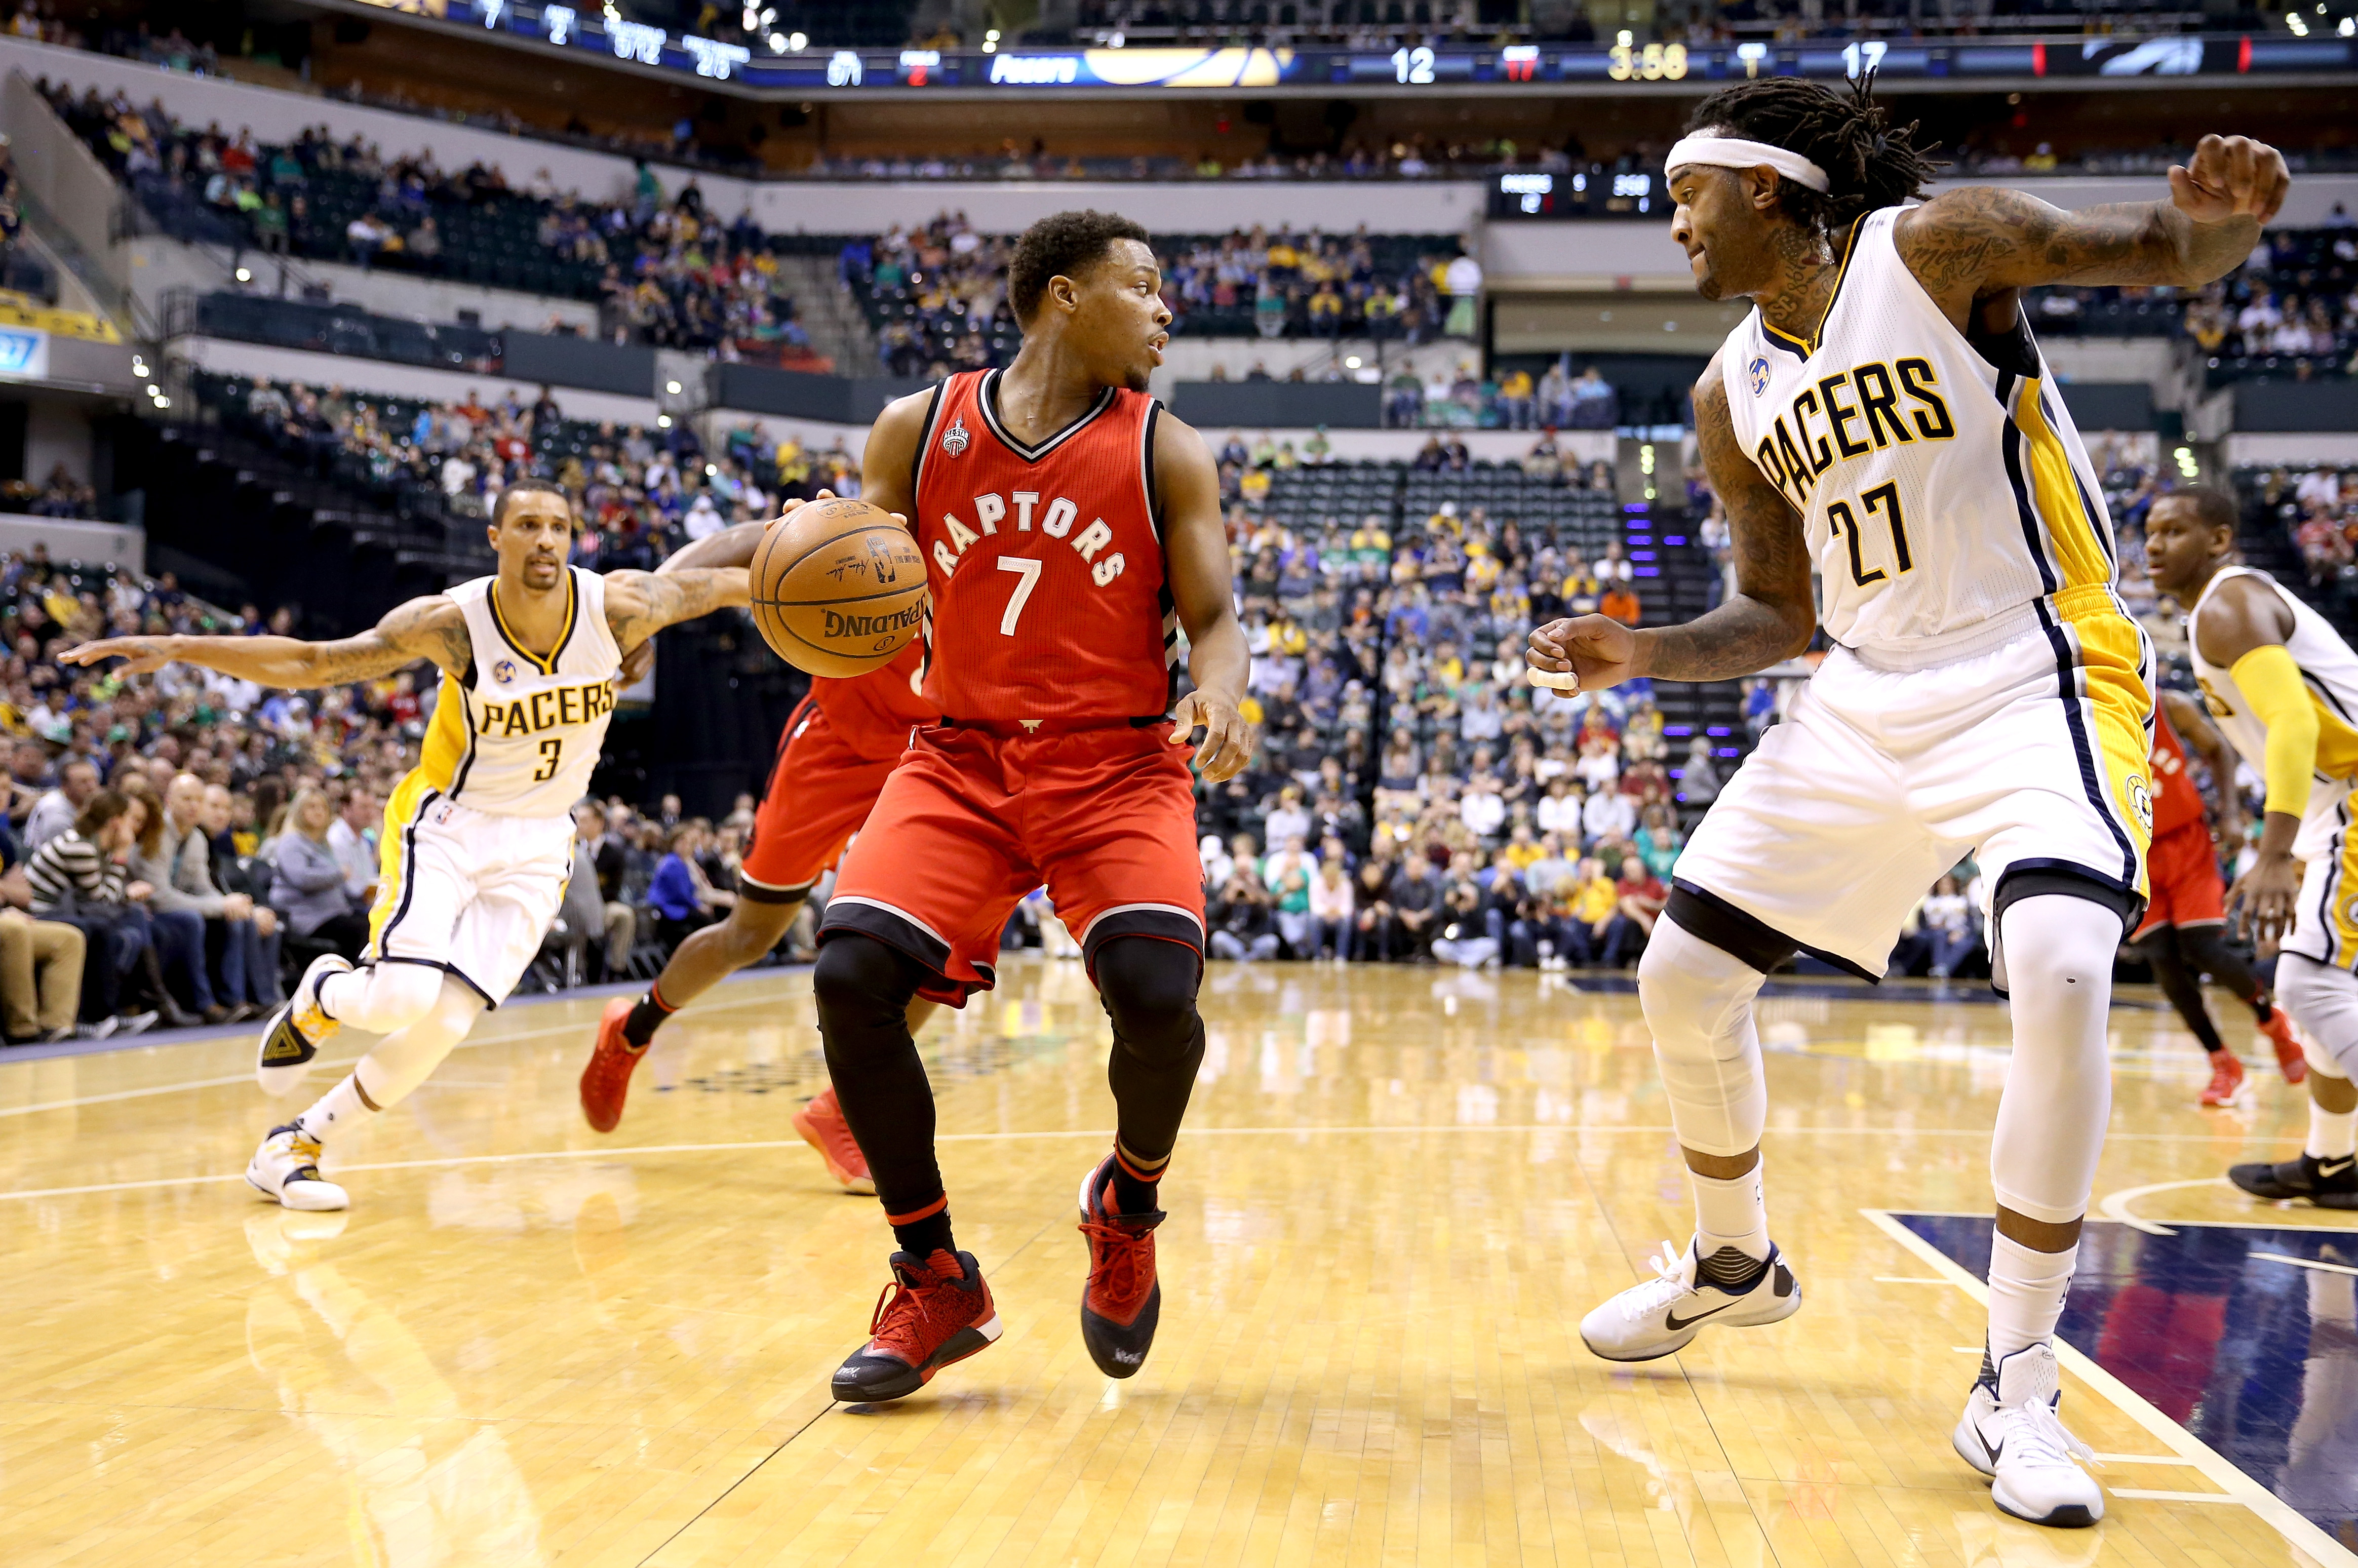 INDIANAPOLIS, IN - MARCH 17: Kyle Lowry #7 of the Toronto Raptors dribbles the ball against the Indiana Pacers during the game at Bankers Life Fieldhouse on March 17, 2016 in Indianapolis, Indiana. (Photo by Andy Lyons/Getty Images)